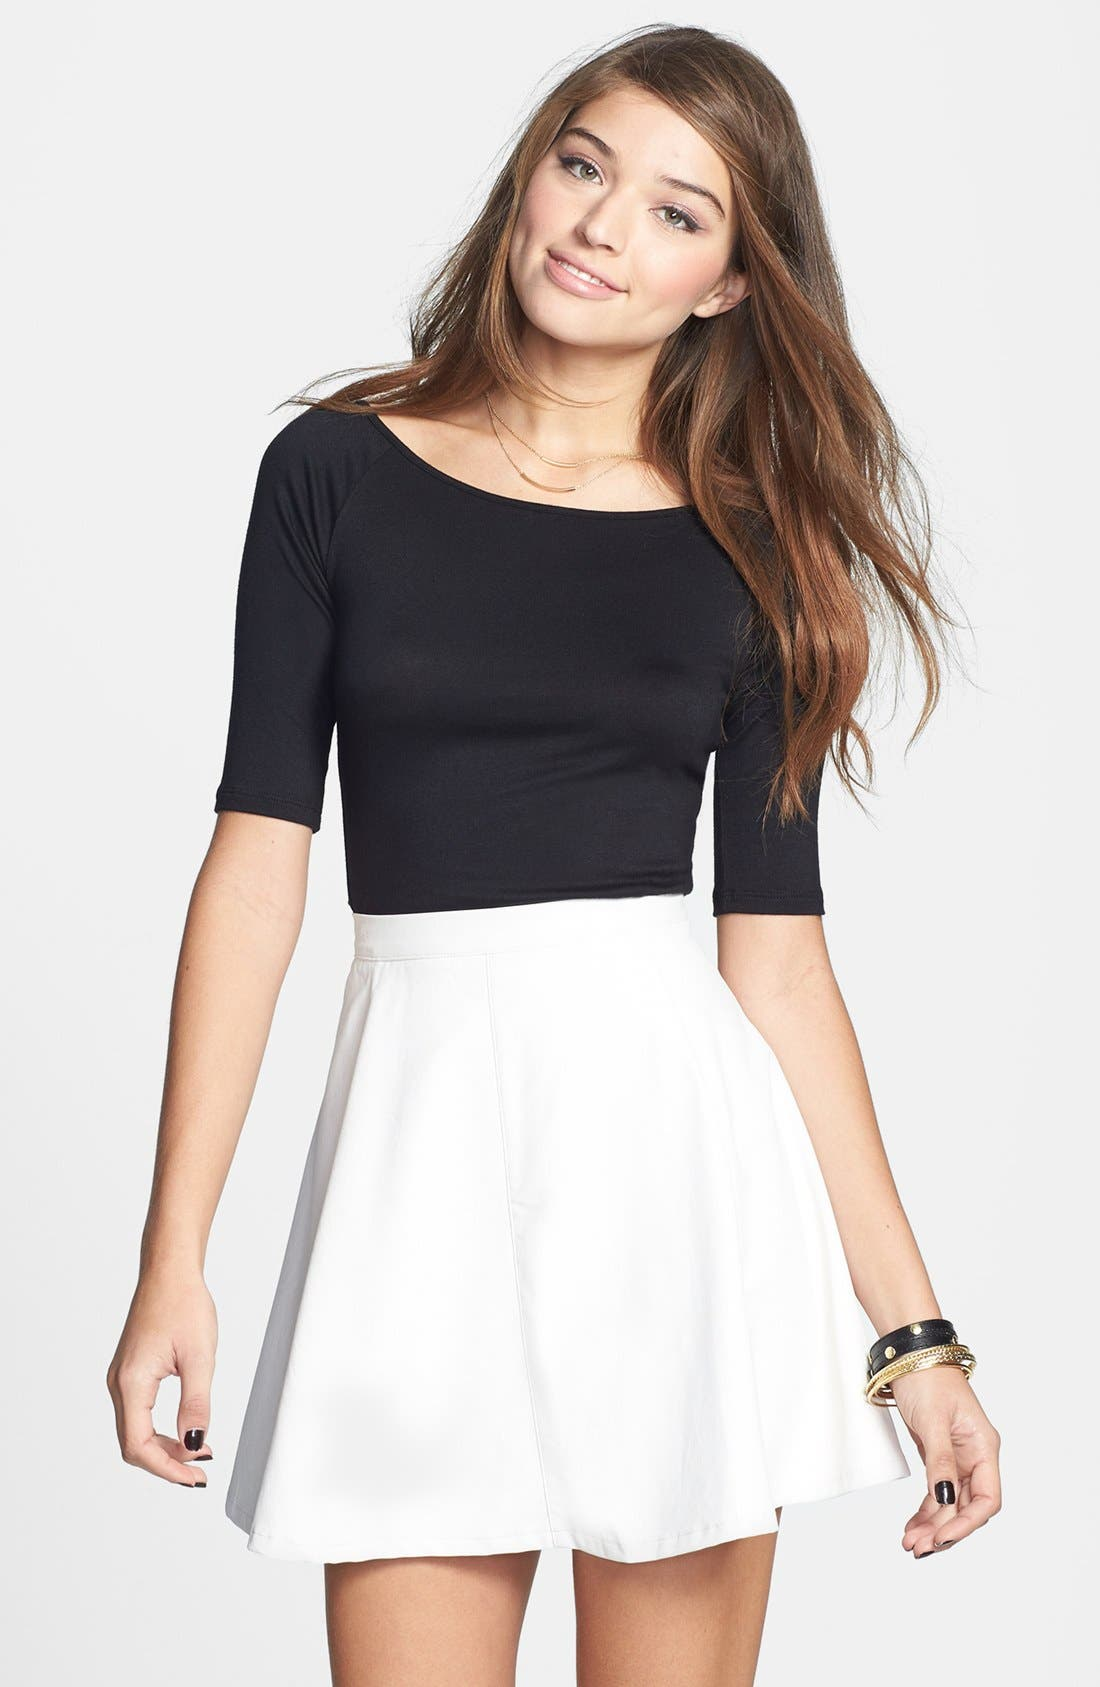 Alternate Image 1 Selected - Lily White Faux Leather Skater Skirt (Juniors) (Online Only)